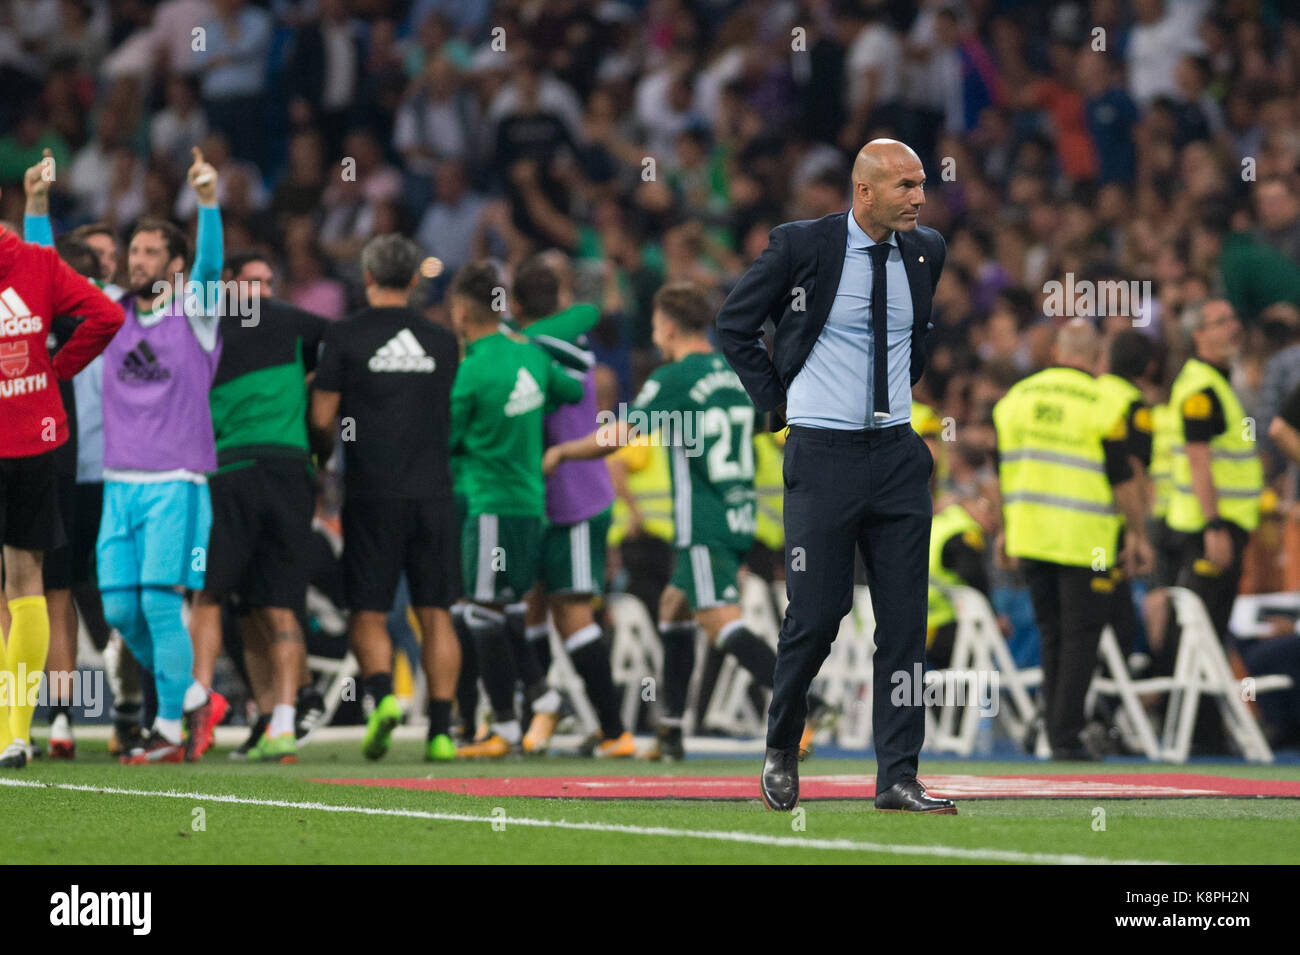 Zidane S High Resolution Stock Photography And Images Alamy